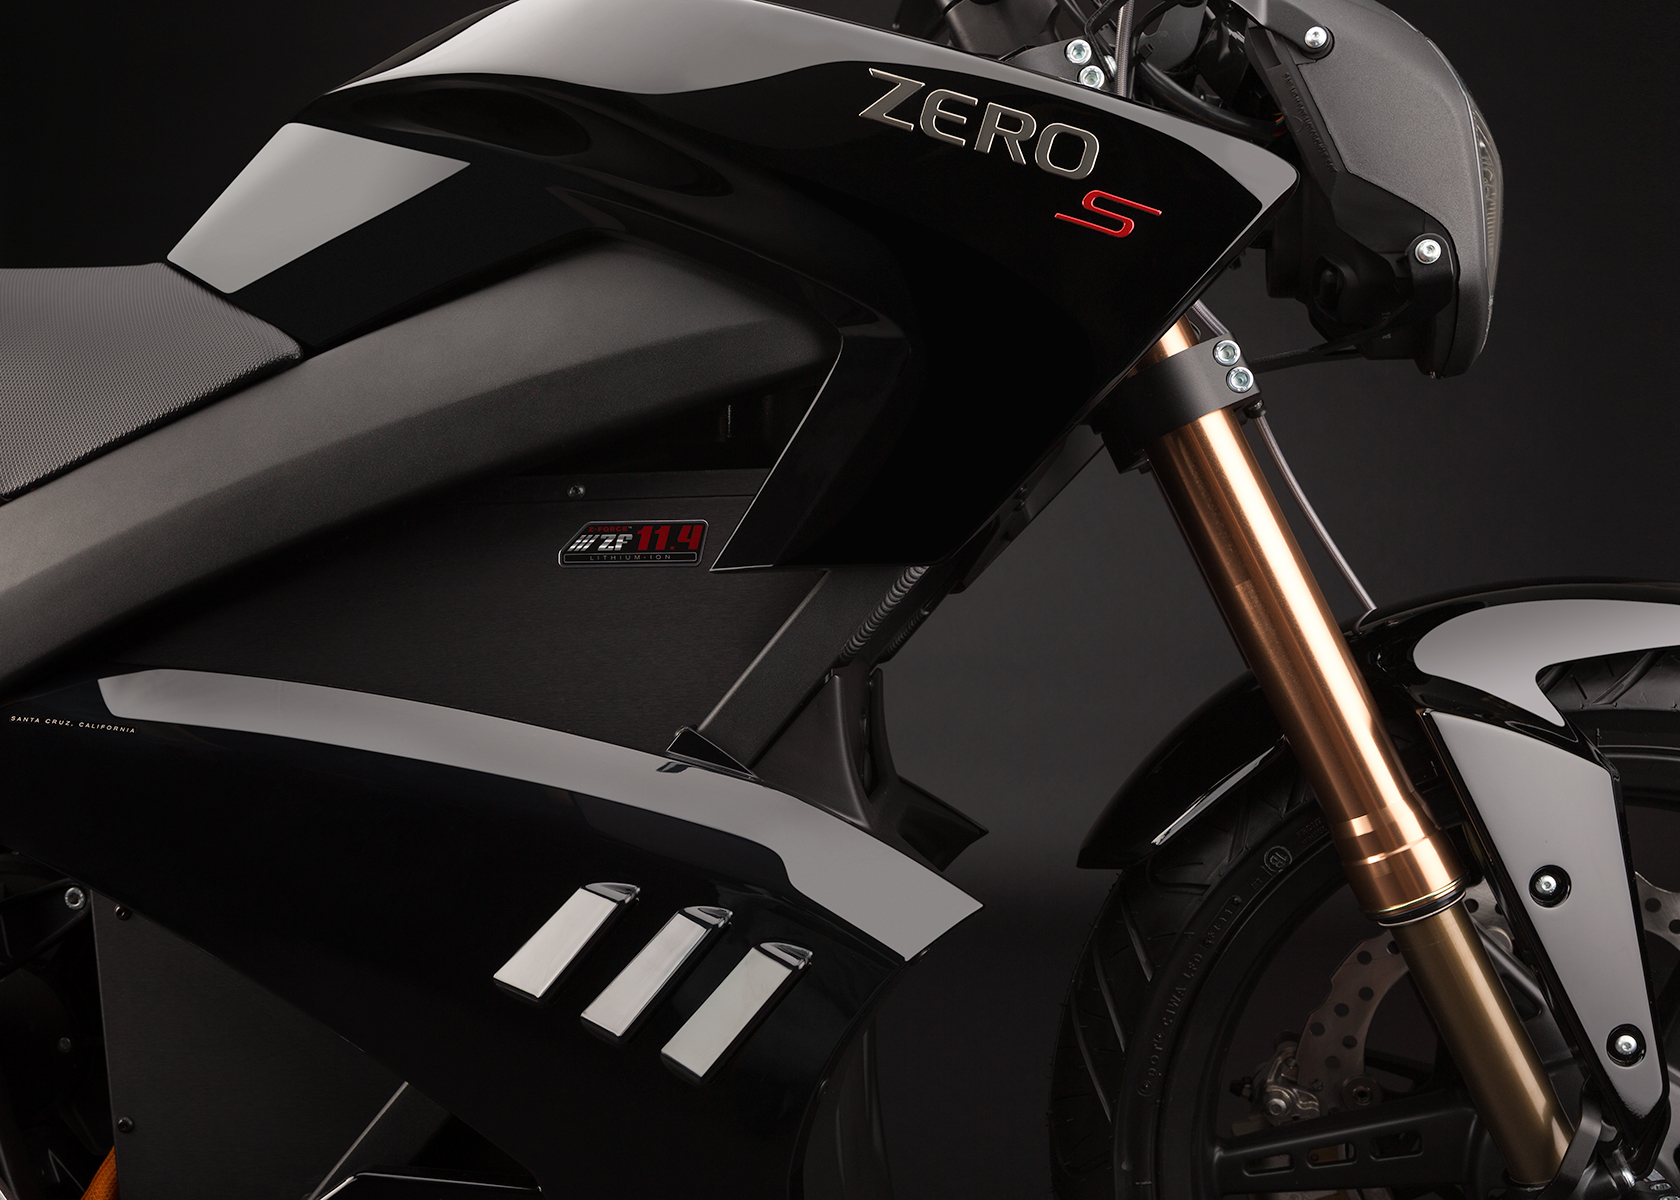 2013 Zero S Electric Motorcycle: Front Fork